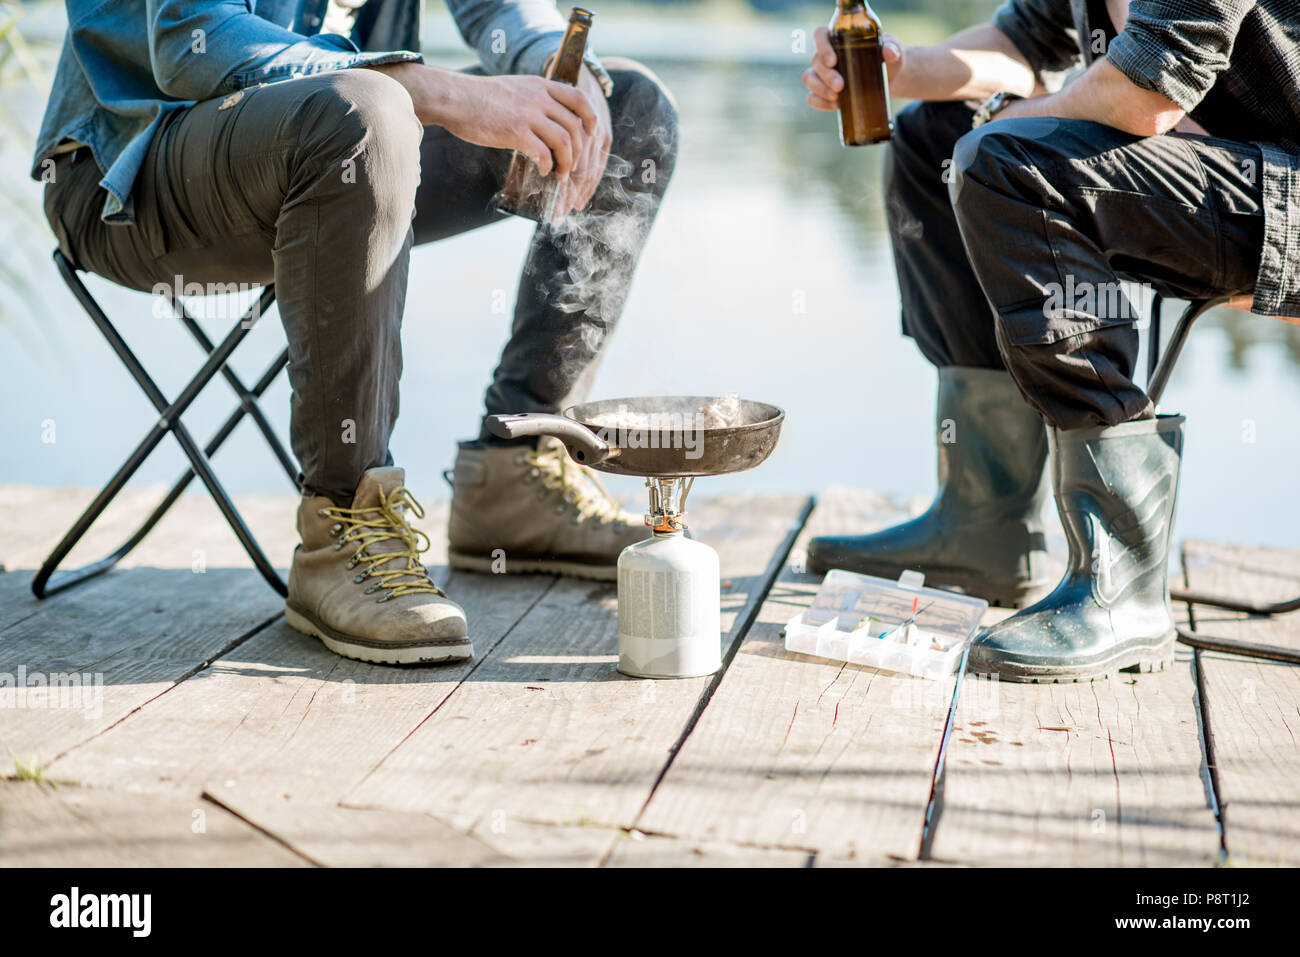 Two fishermen frying fish sitting with beer during the picnic on the wooden pier near the lake in the morning - Stock Image